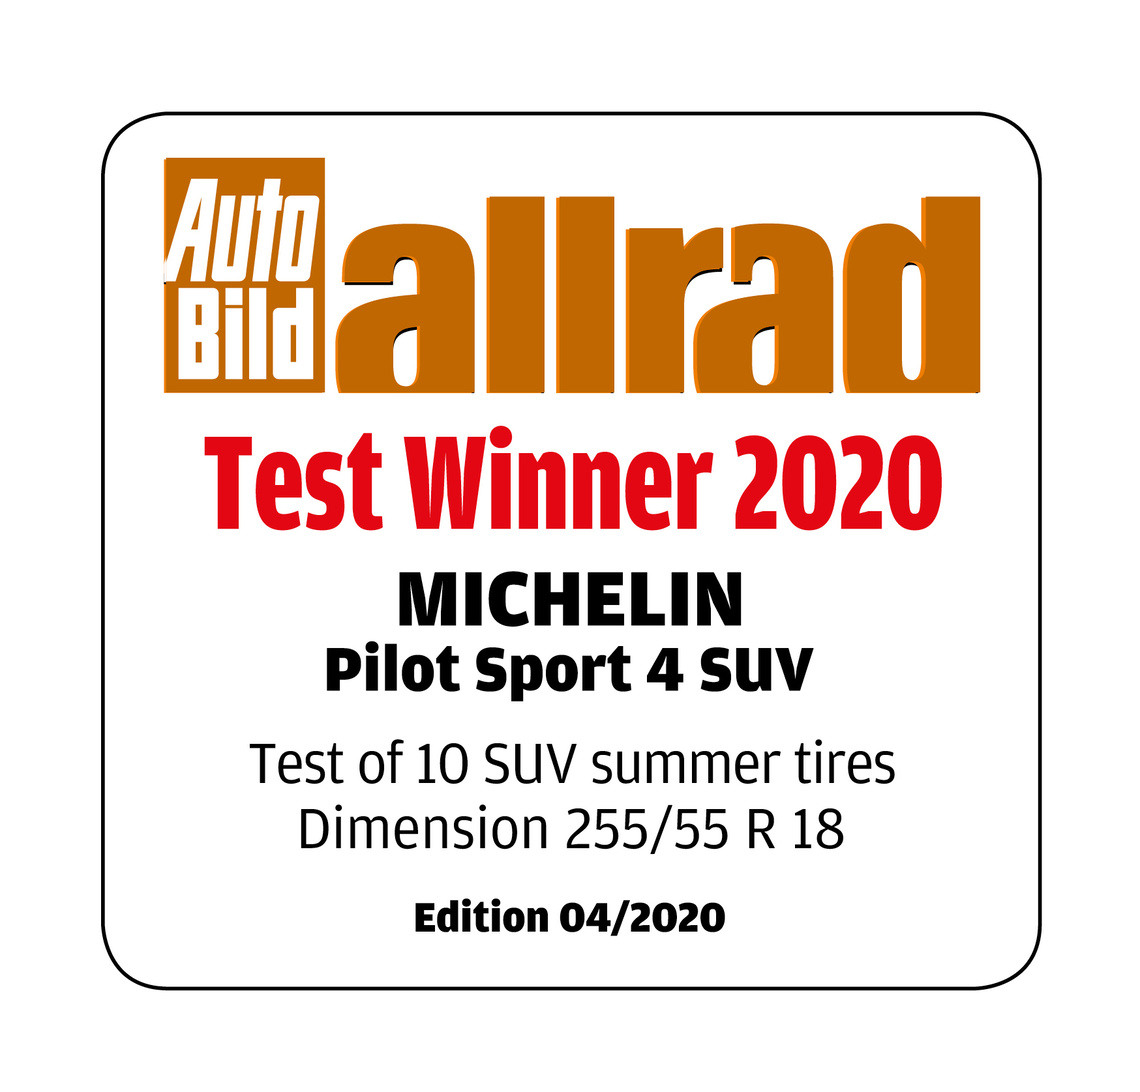 michelin pilotsport ts aba 04 2020 en